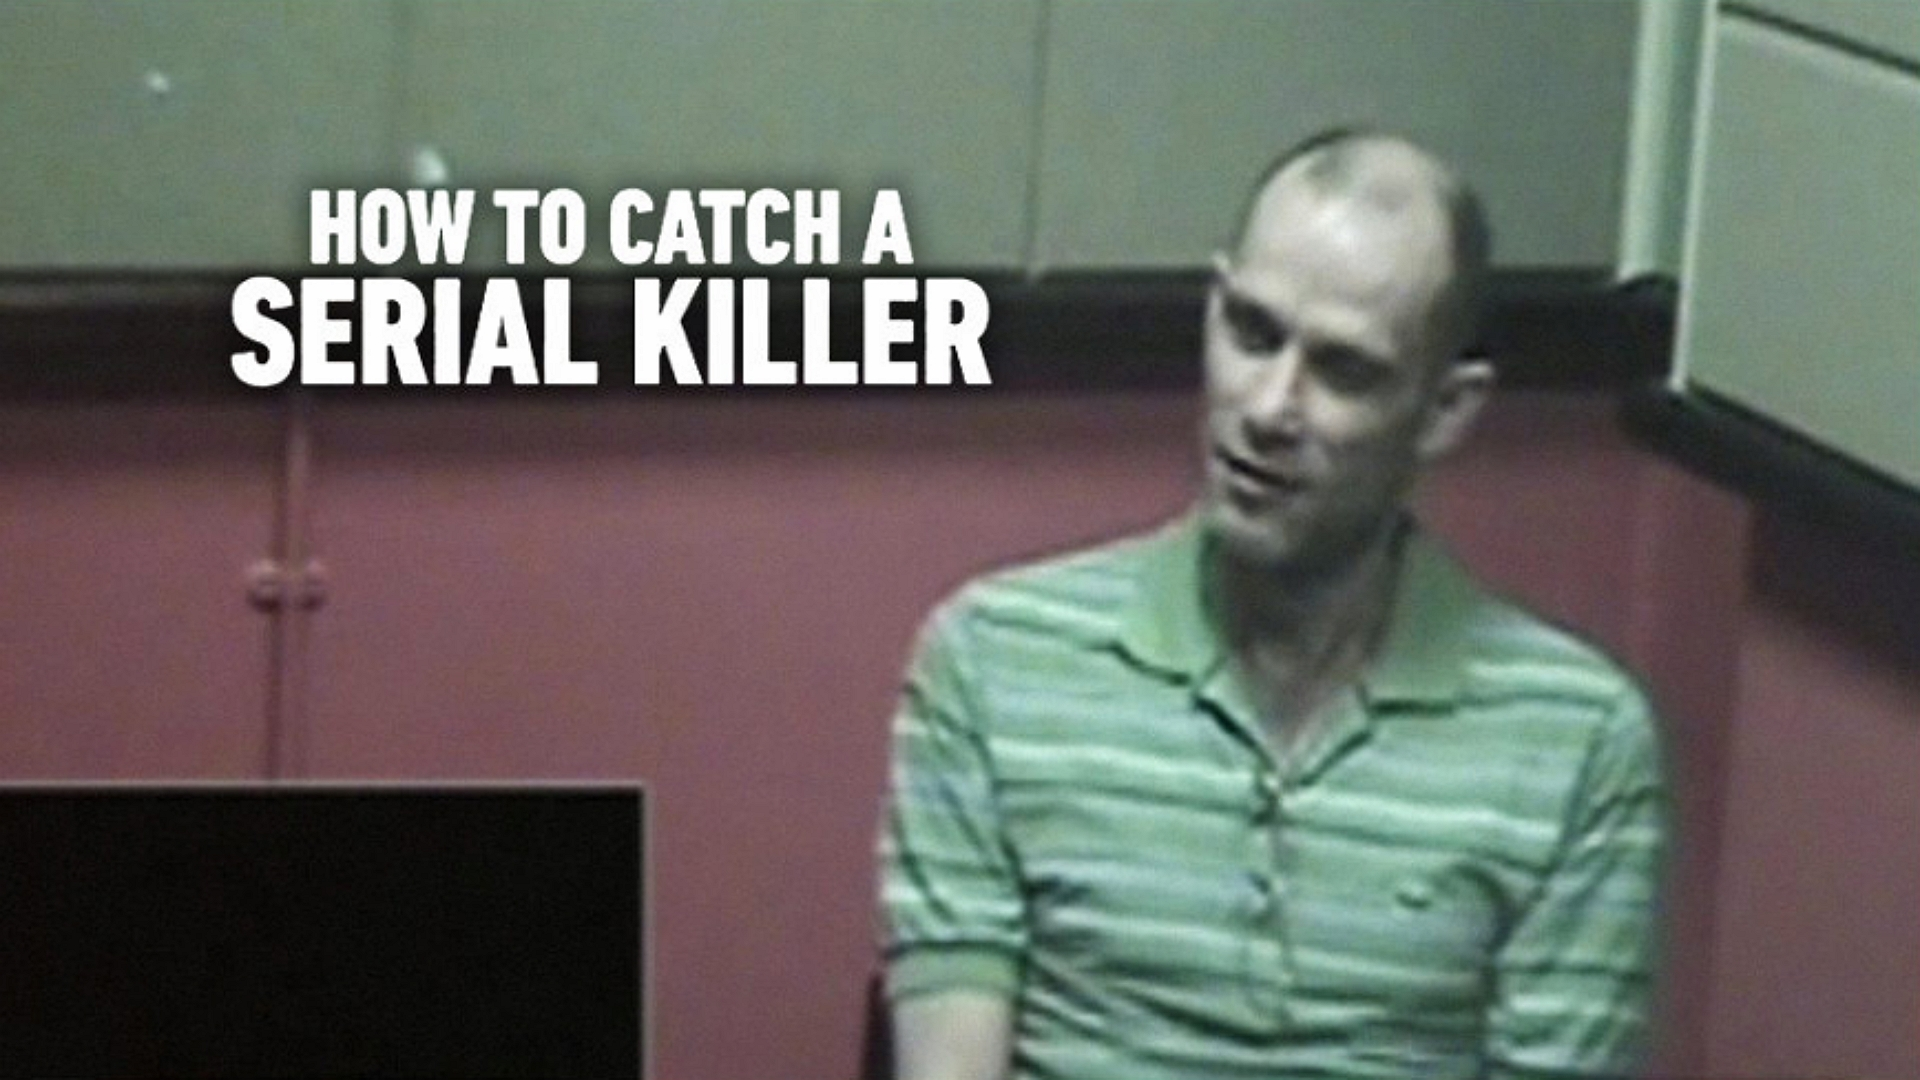 How to Catch a Serial Killer